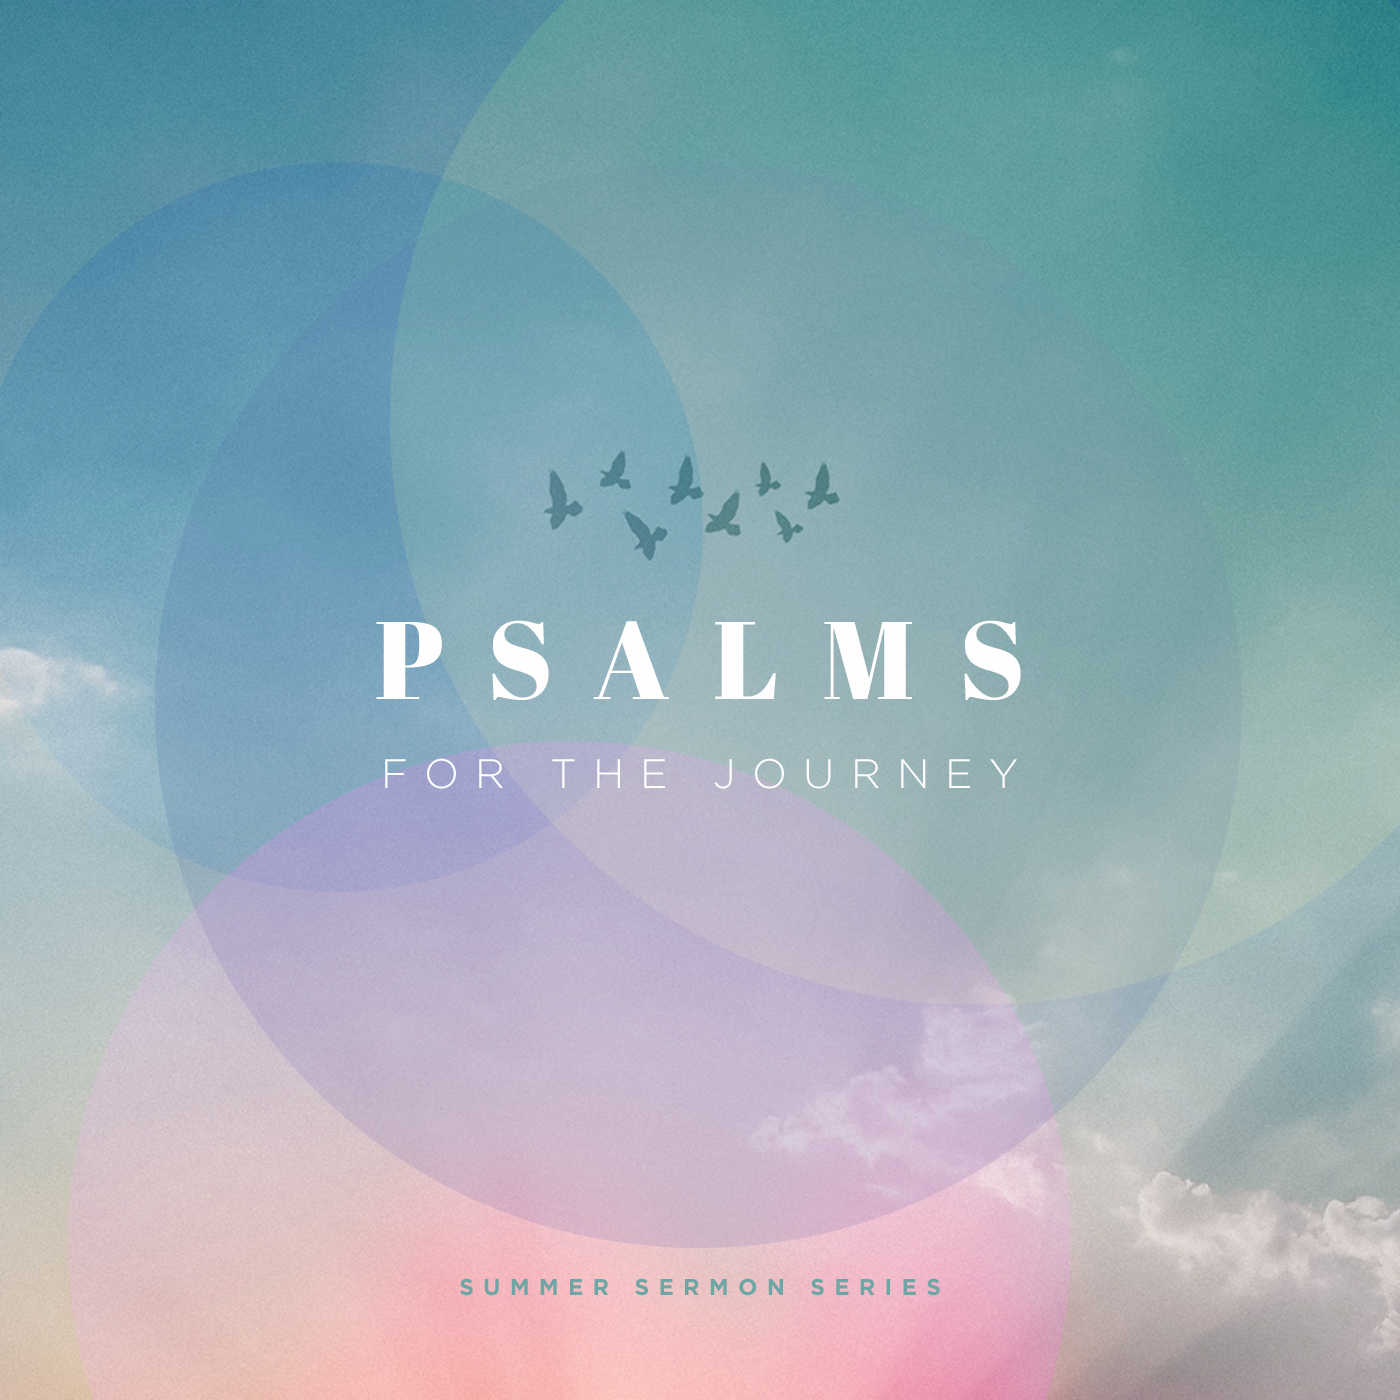 This is a sermon series on the Psalms at Rockwall Presbyterian Church.